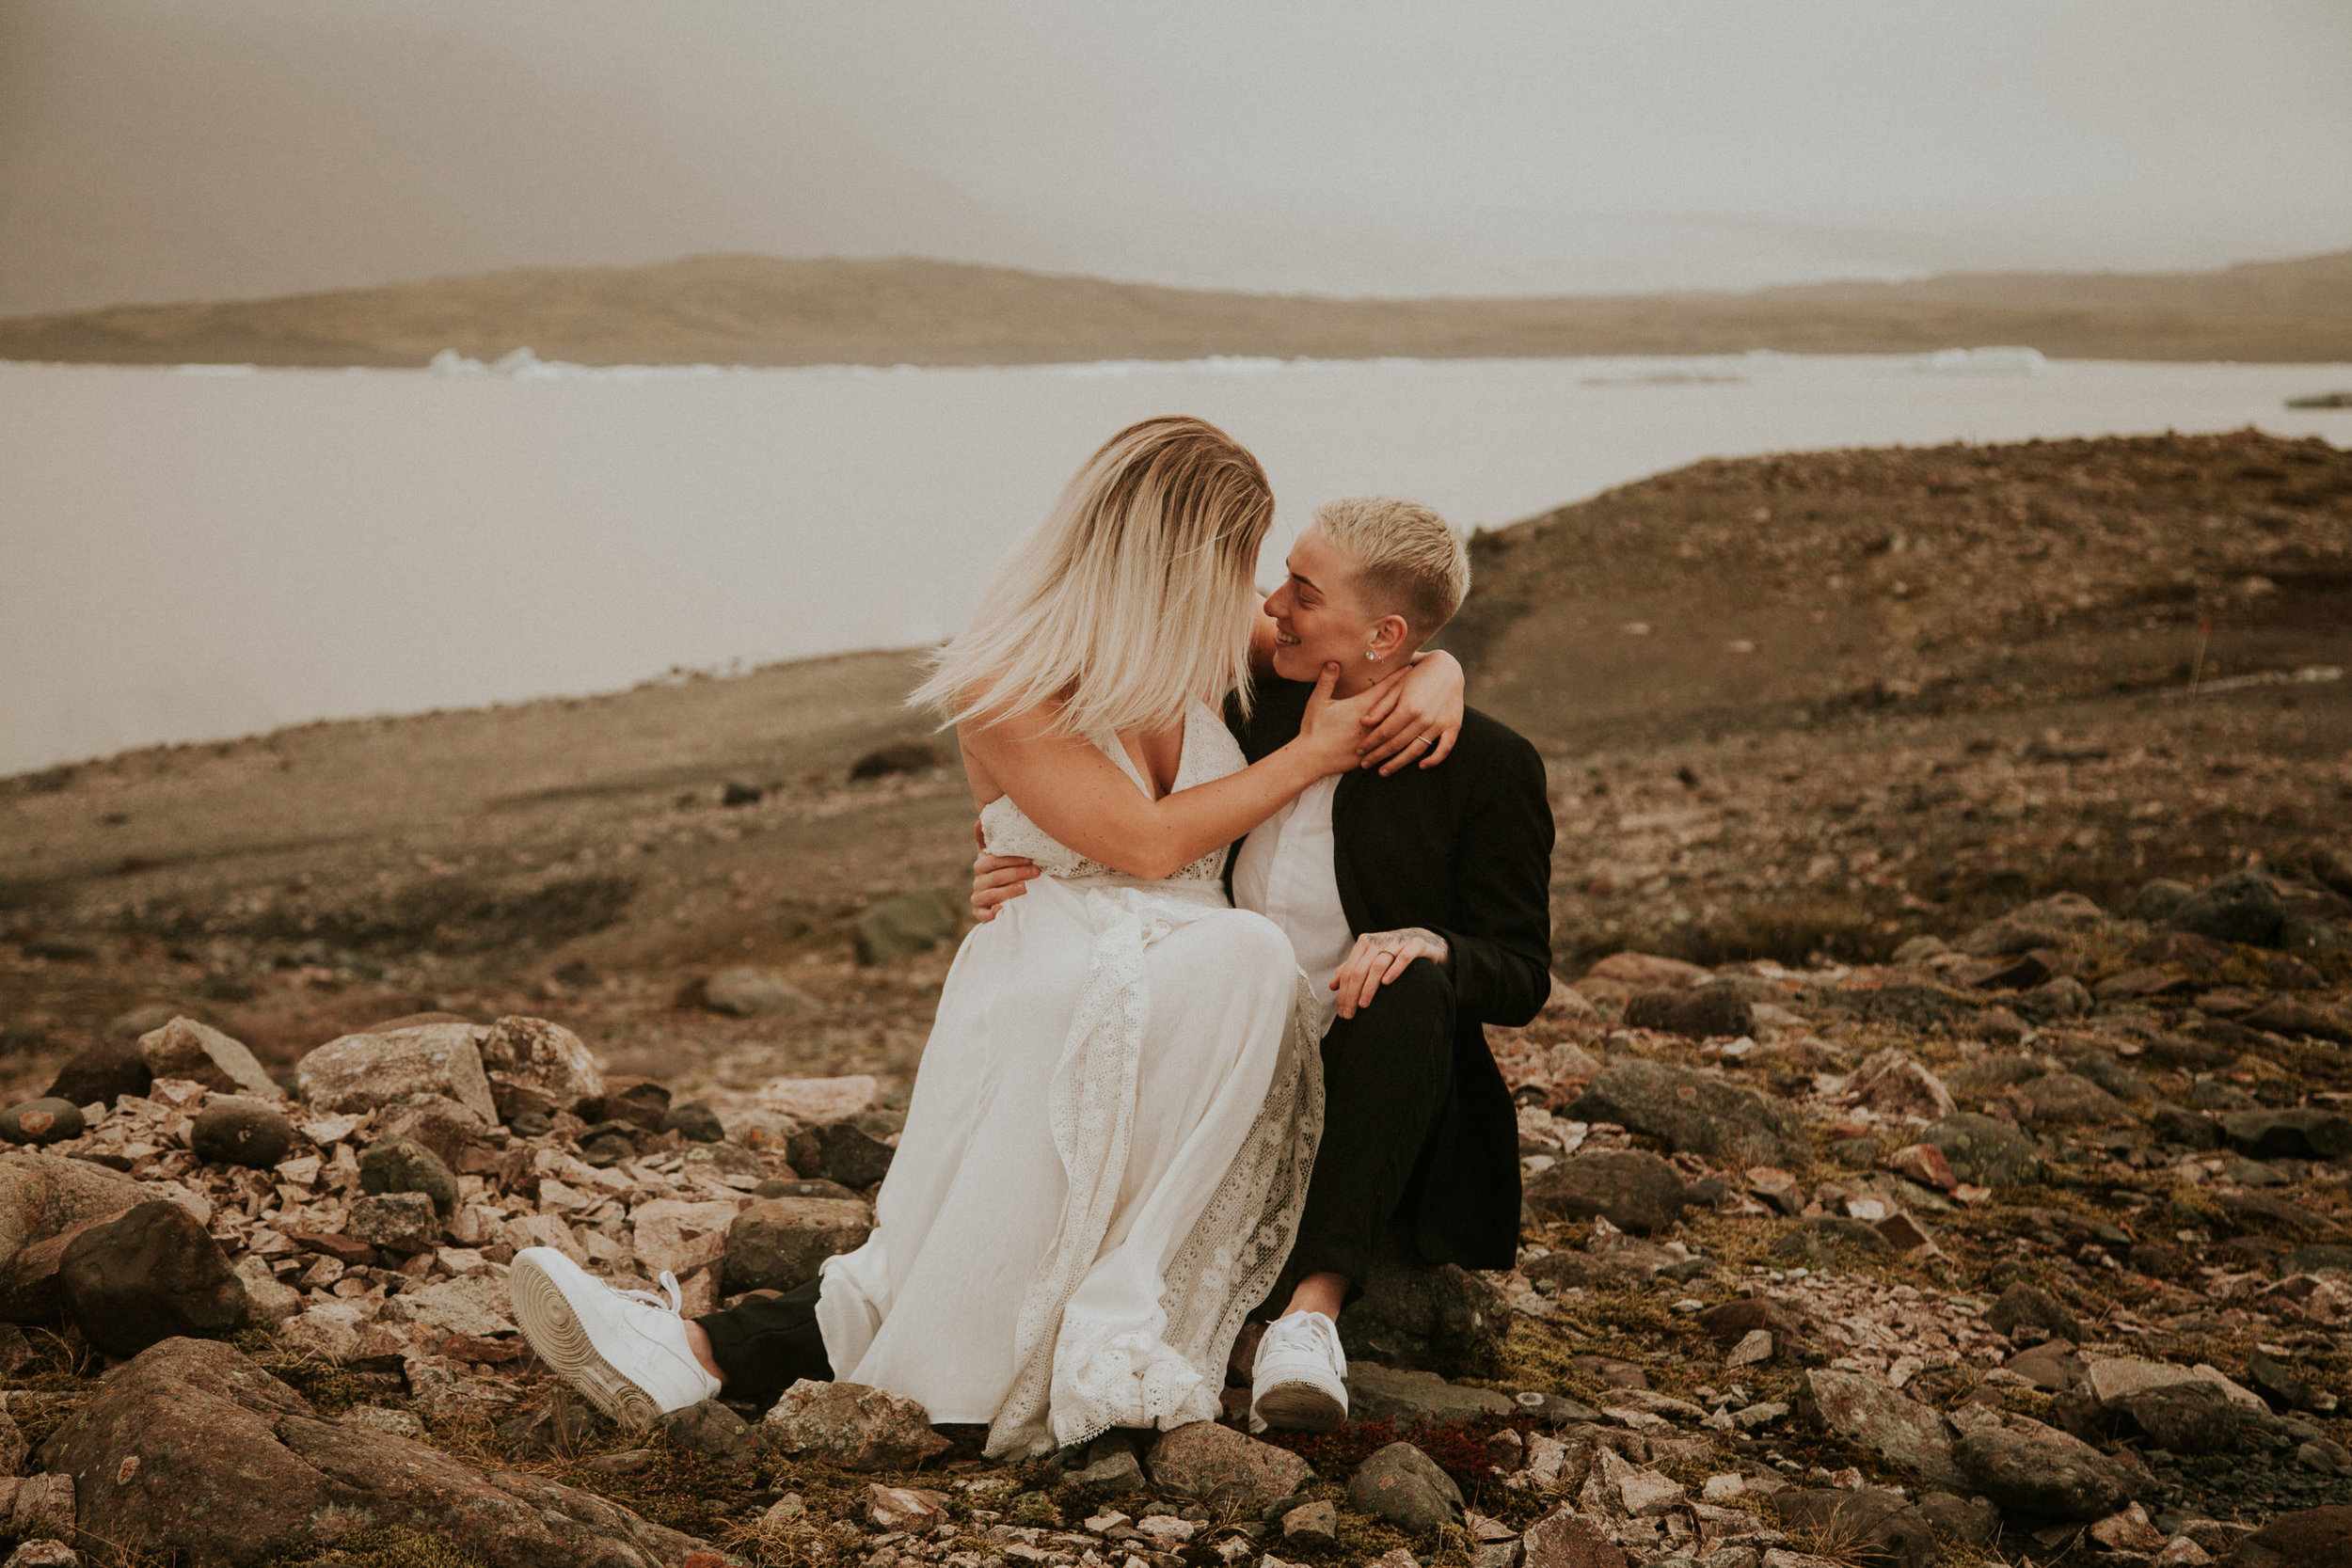 iceberg lagoon same sex elopement iceland first look photographer breeanna lasher